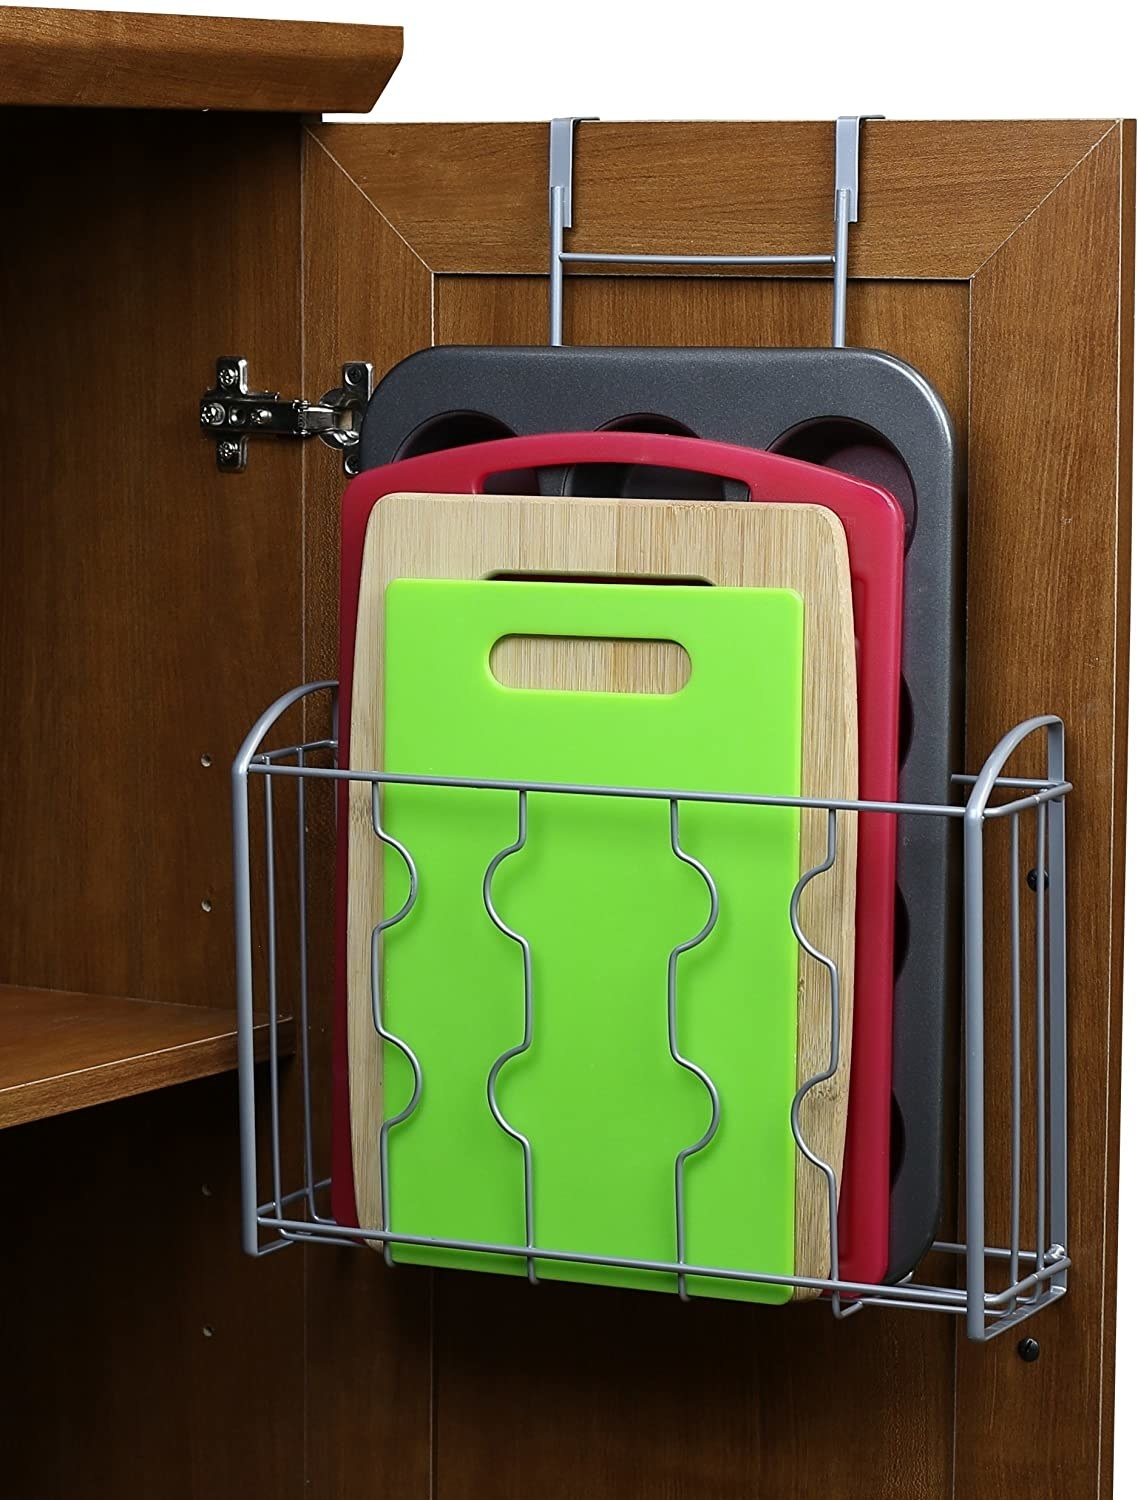 The cabinet organizer hooked onto the back of a cupboard door, holding cutting boards and a muffin tin